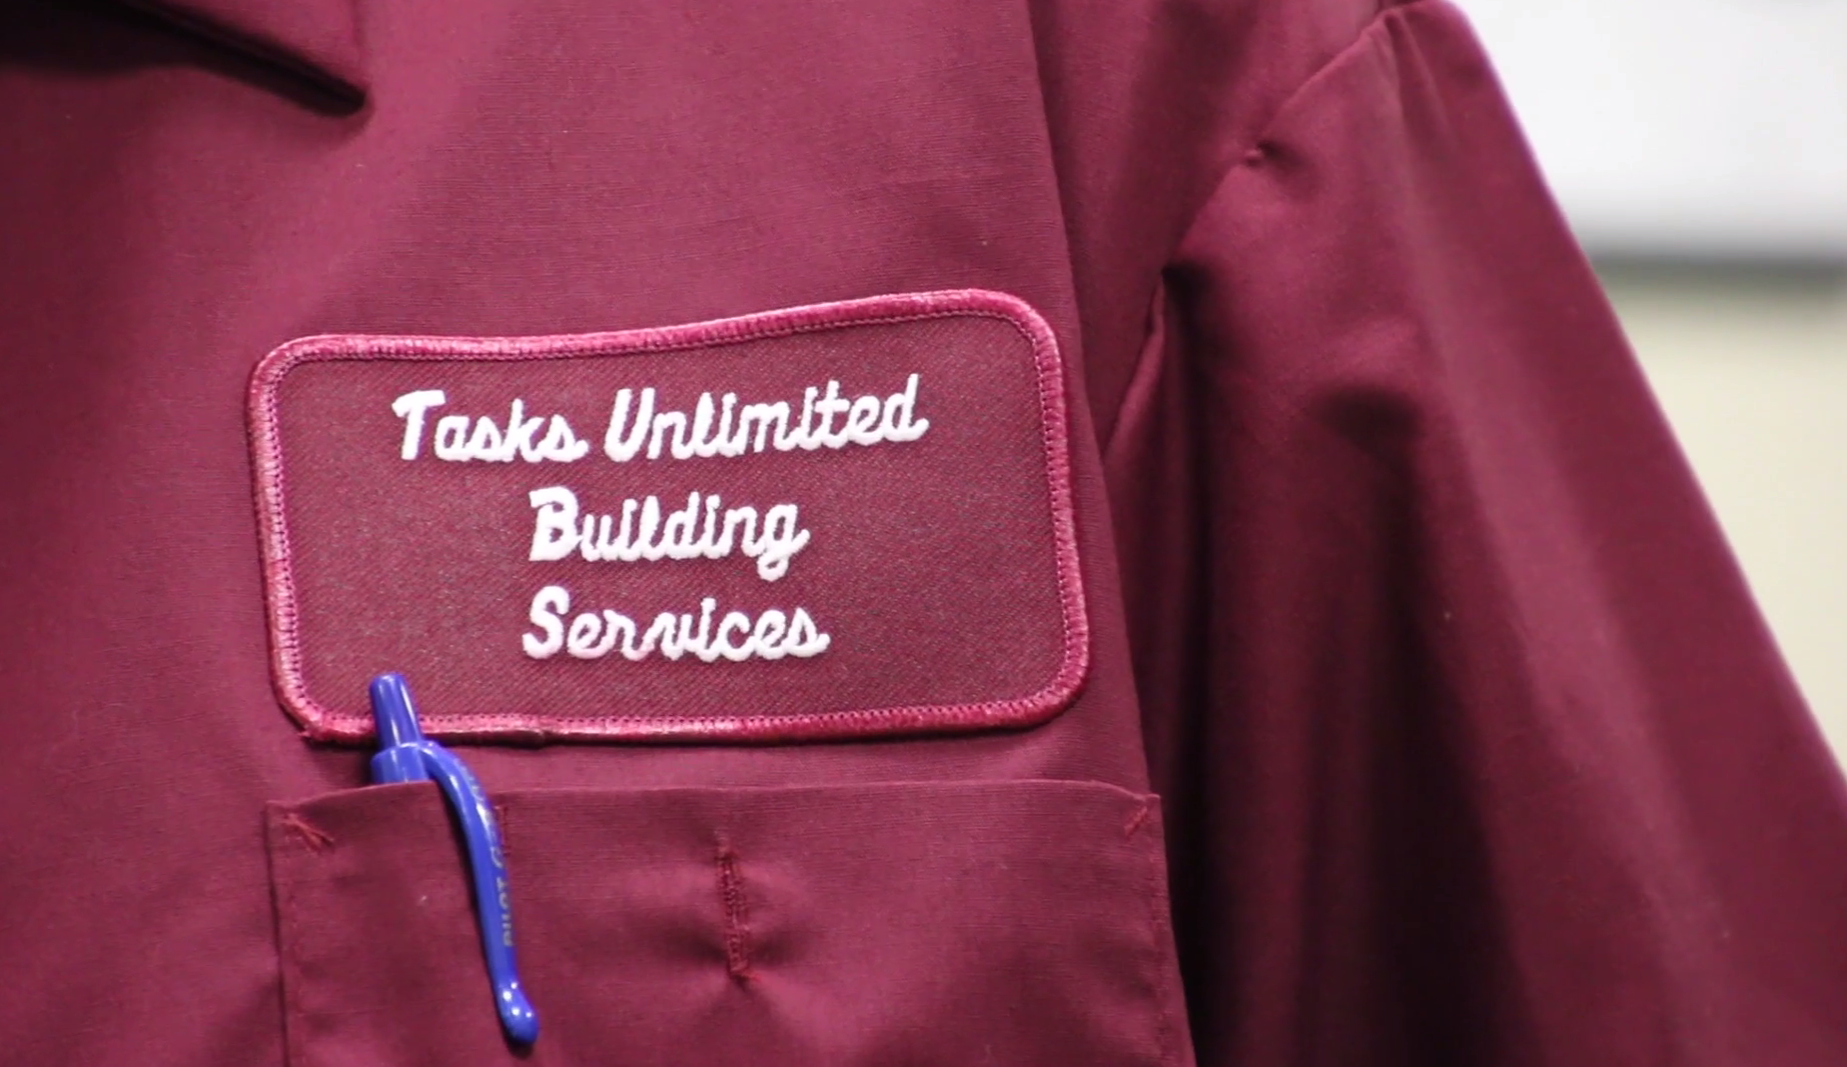 Tasks Unlimited Building Services Uniform